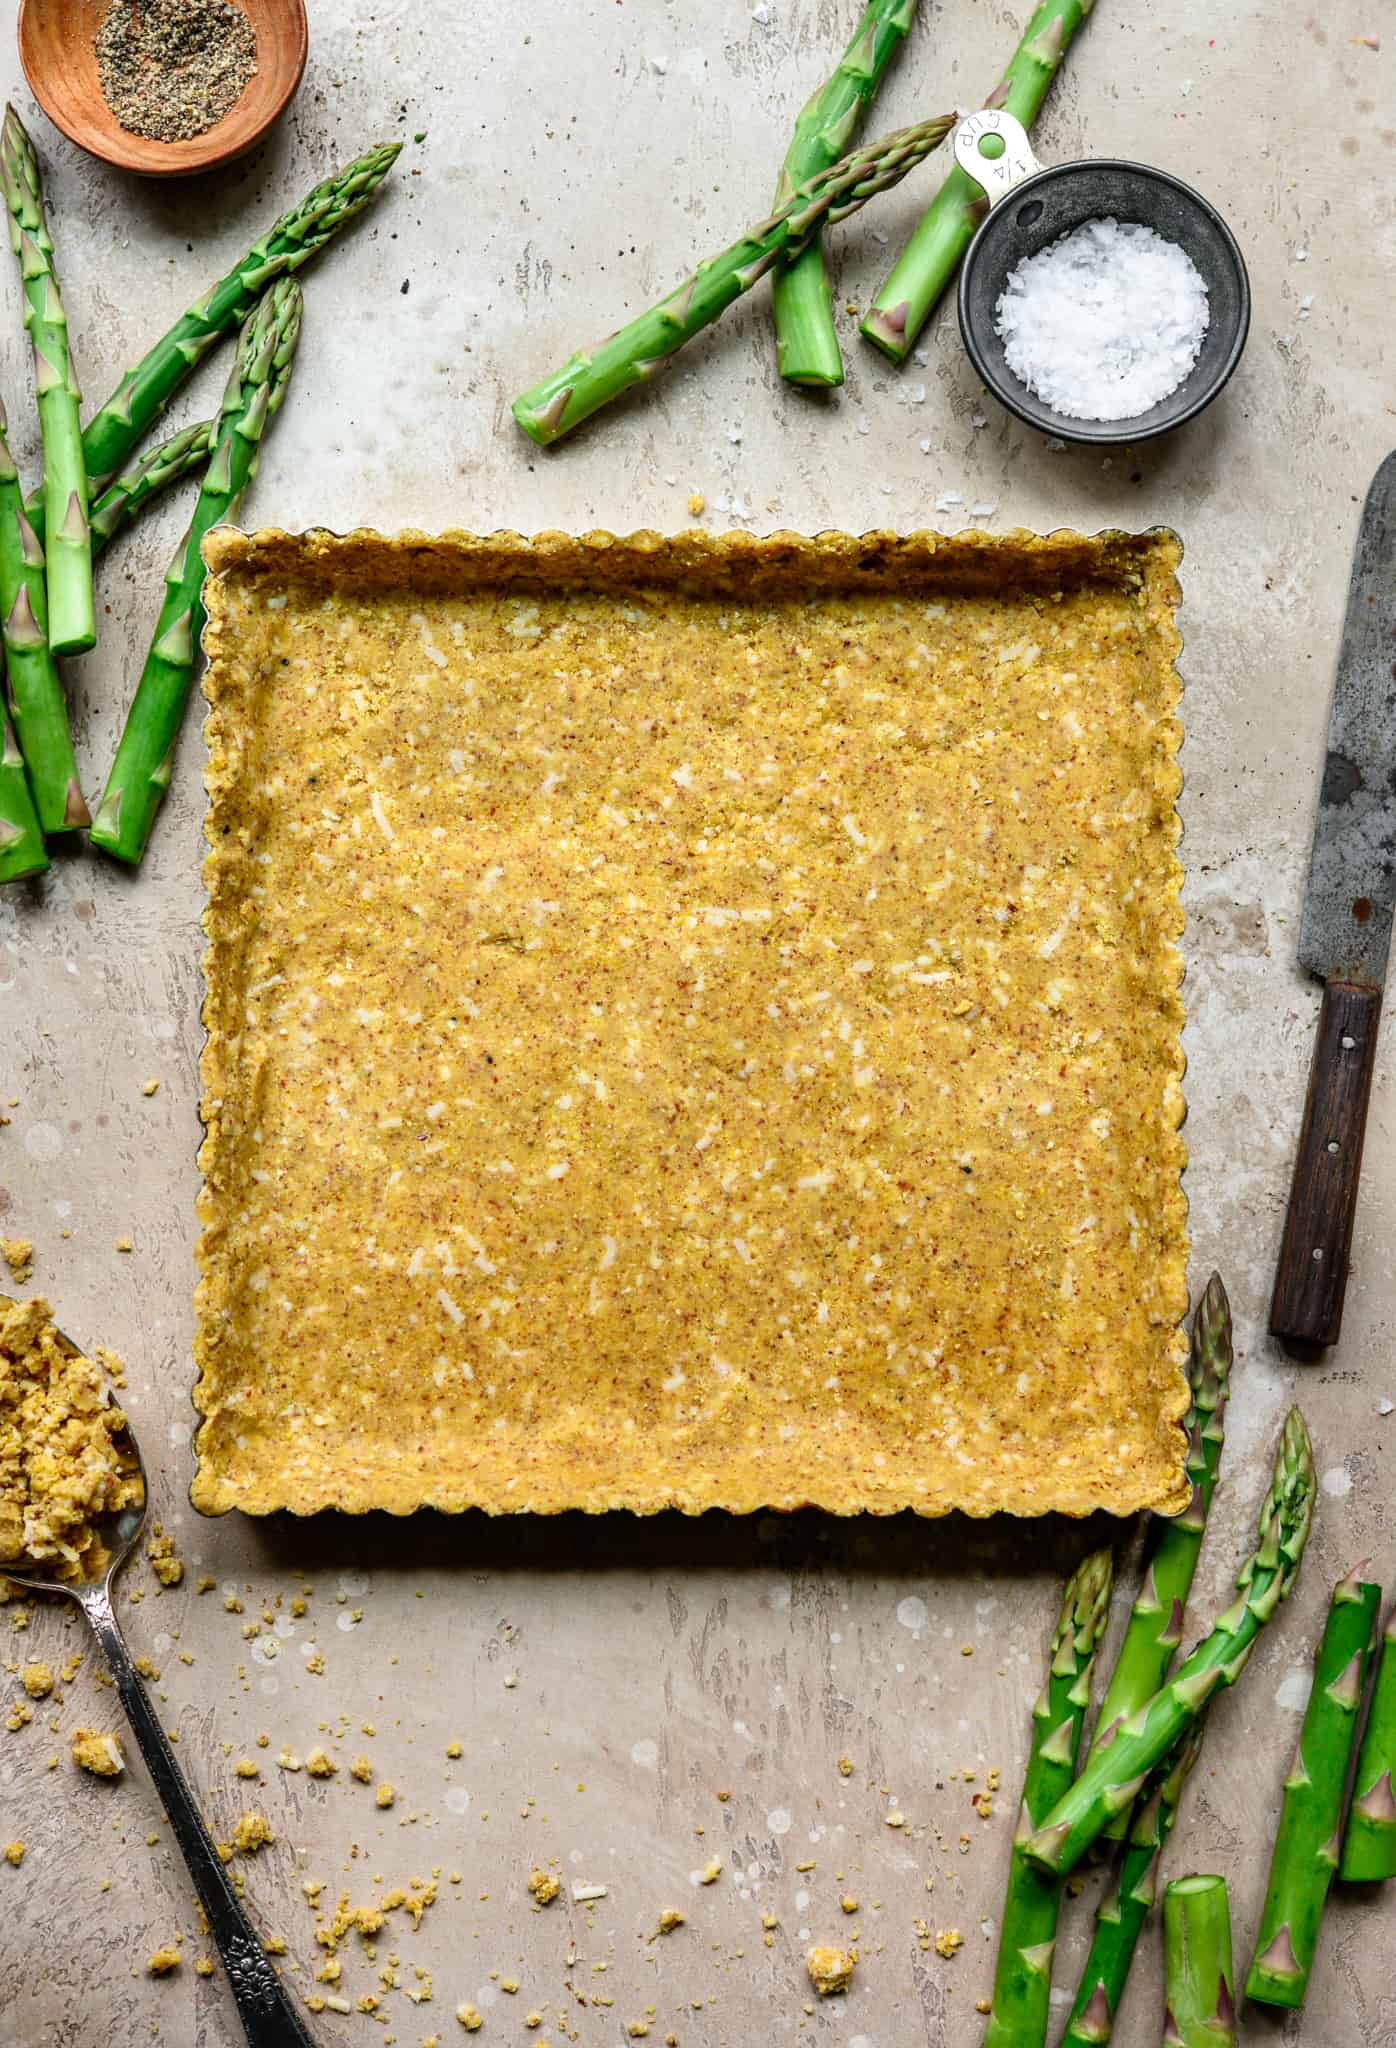 Overhead view of cornmeal crust pressed into square tart pan on light tan background